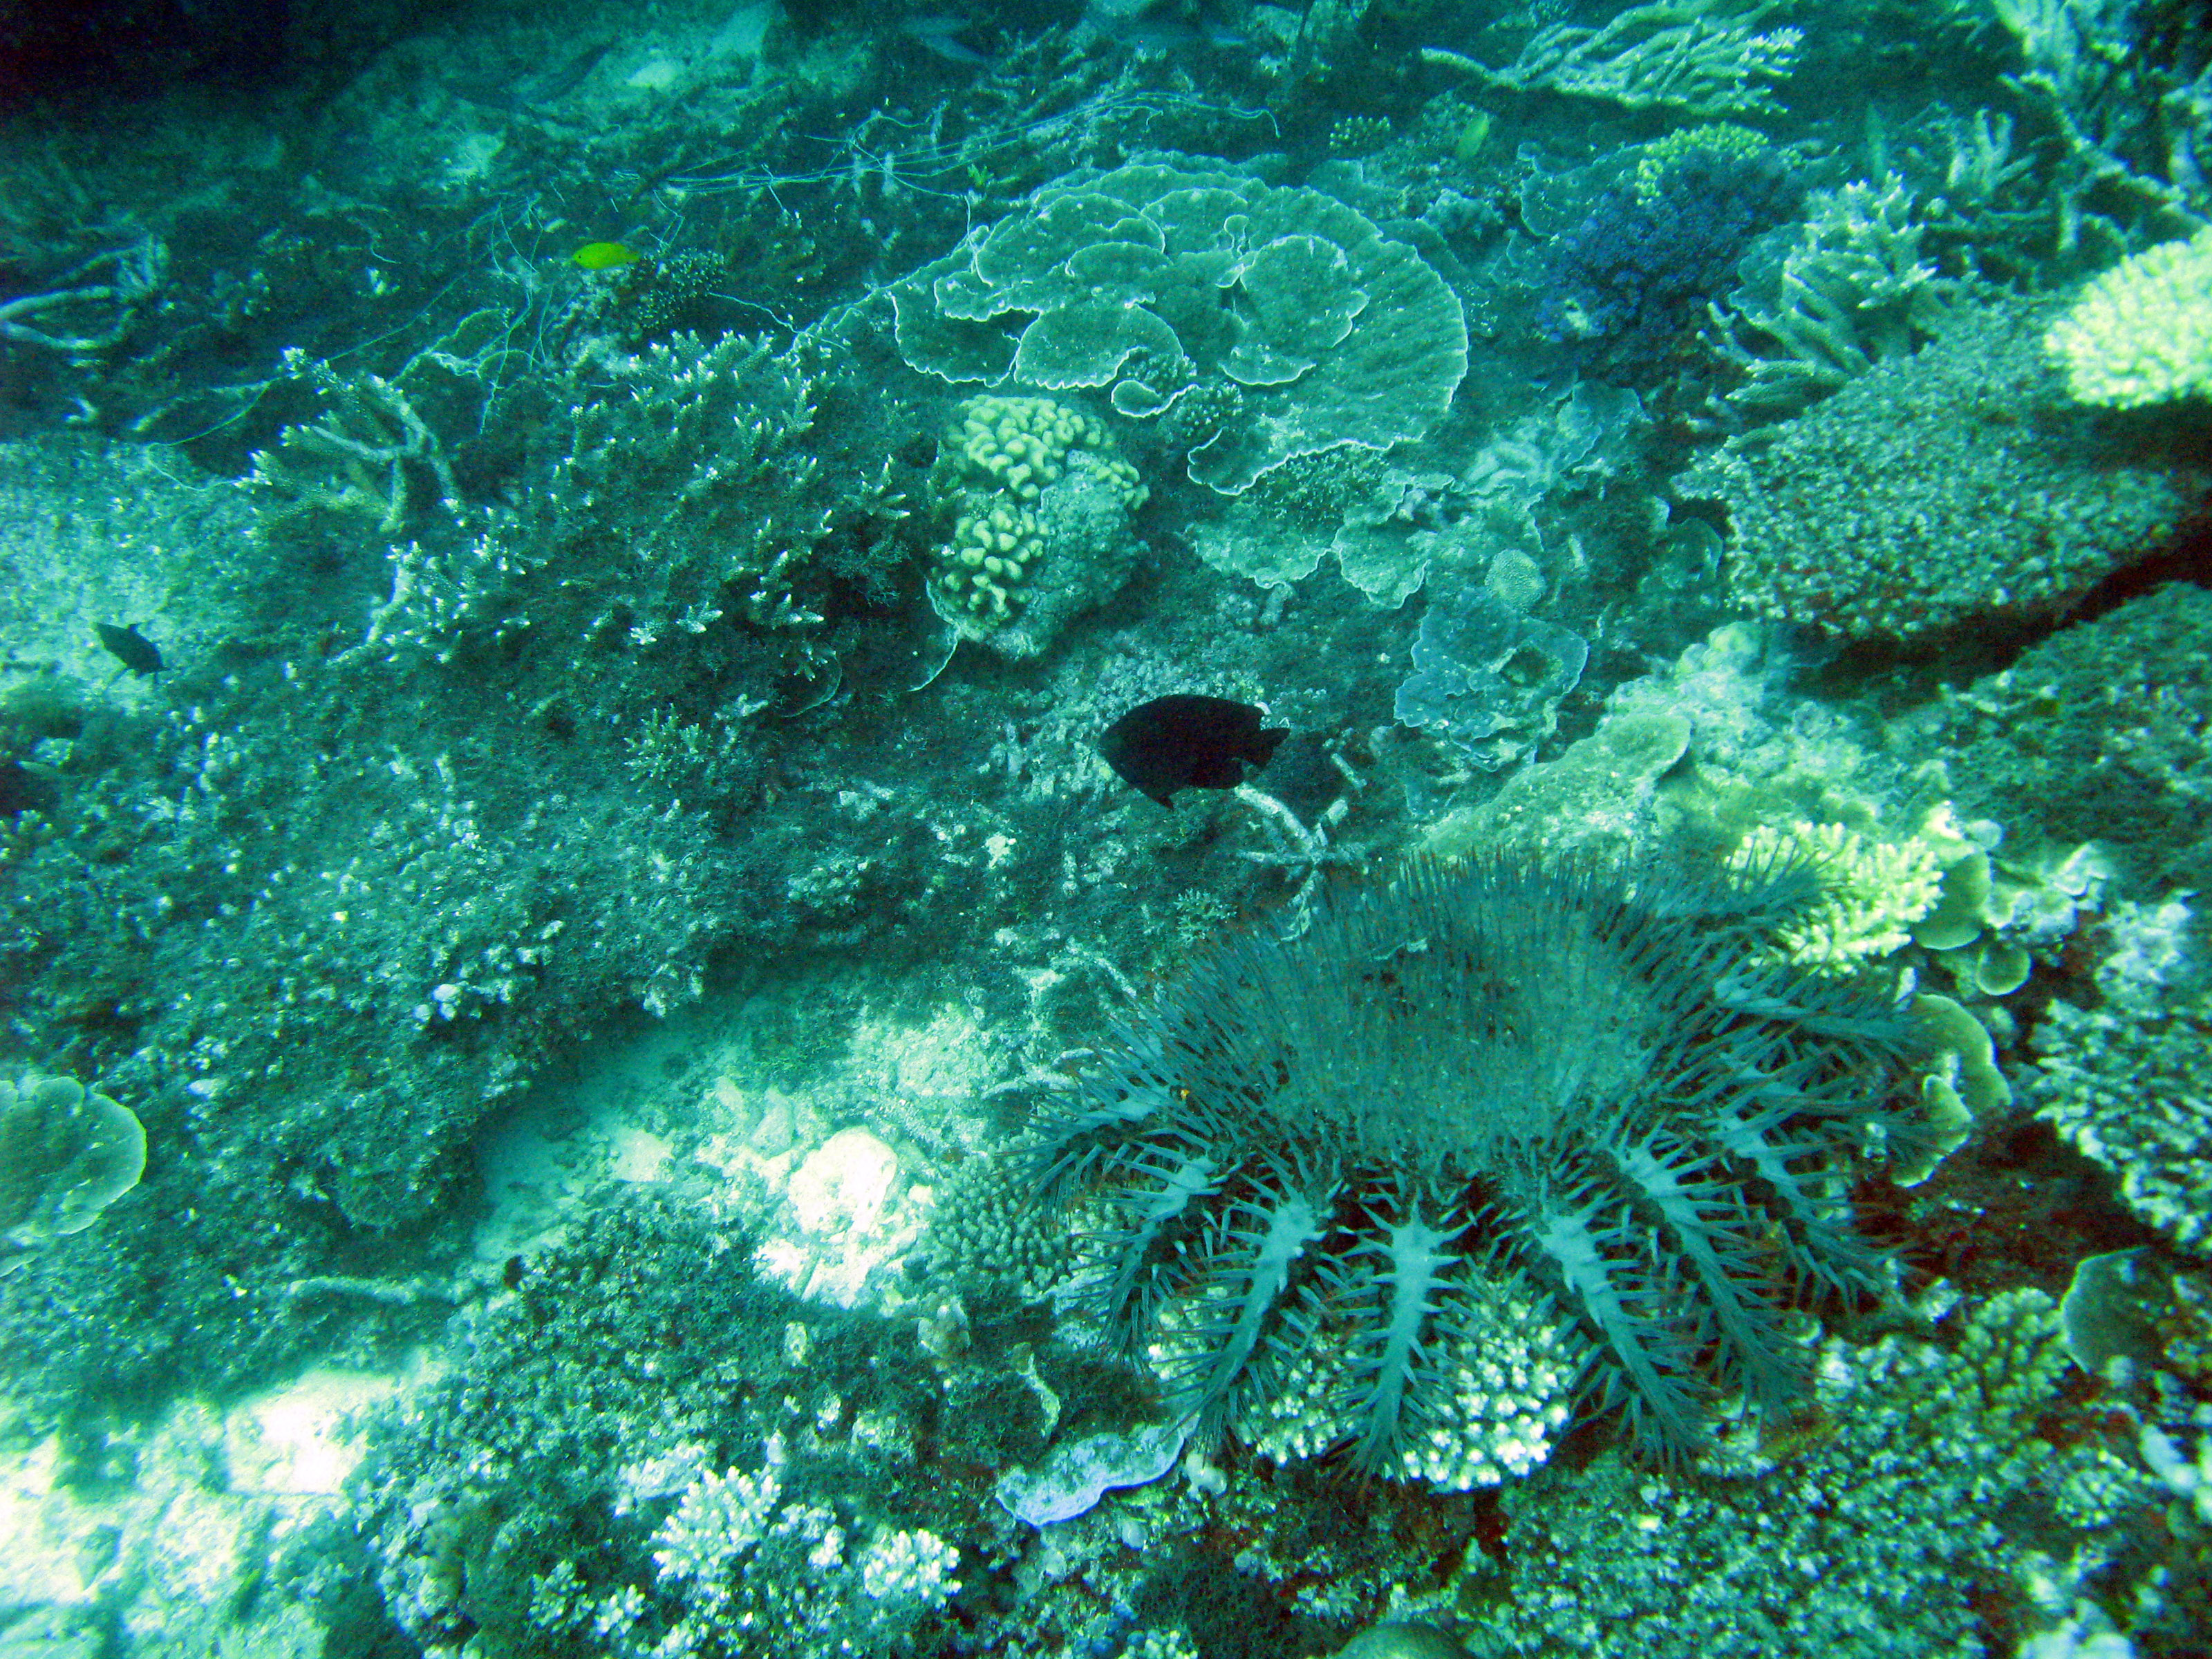 Corals And Starfish 2365 Stockarch Free Stock Photos